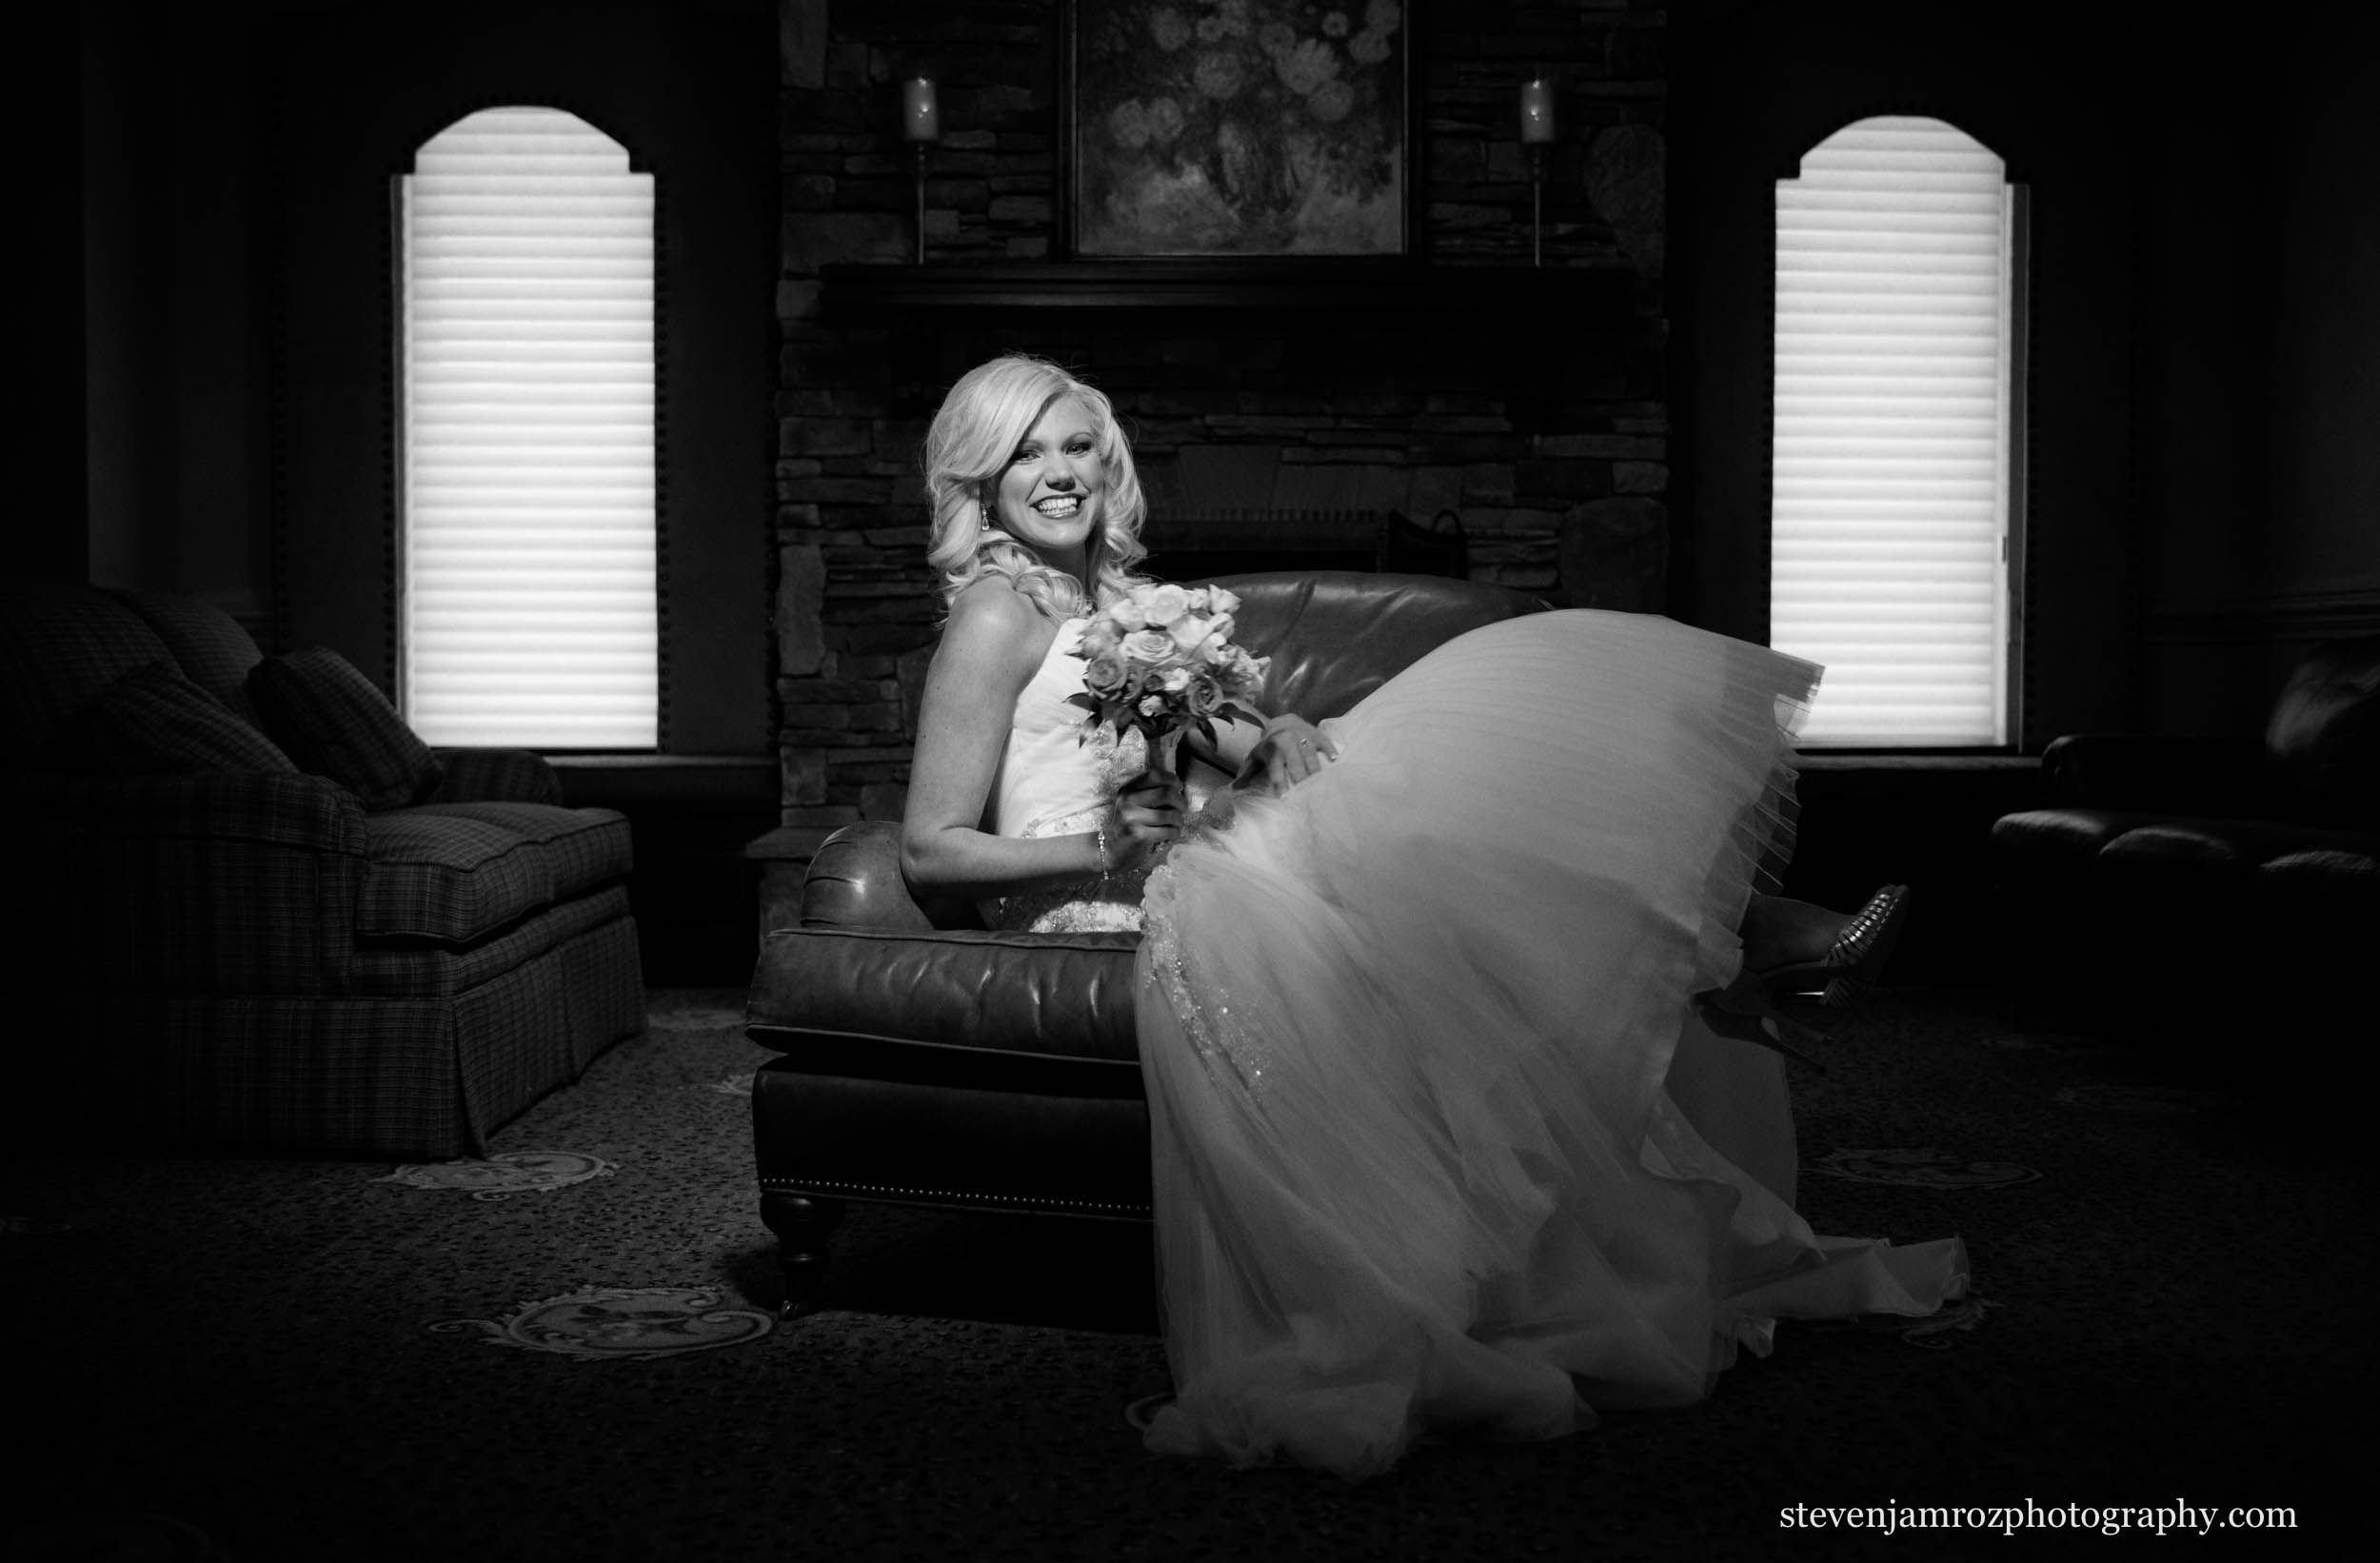 nc-raleigh-country-club-bridal-portraits-photography-0863.jpg